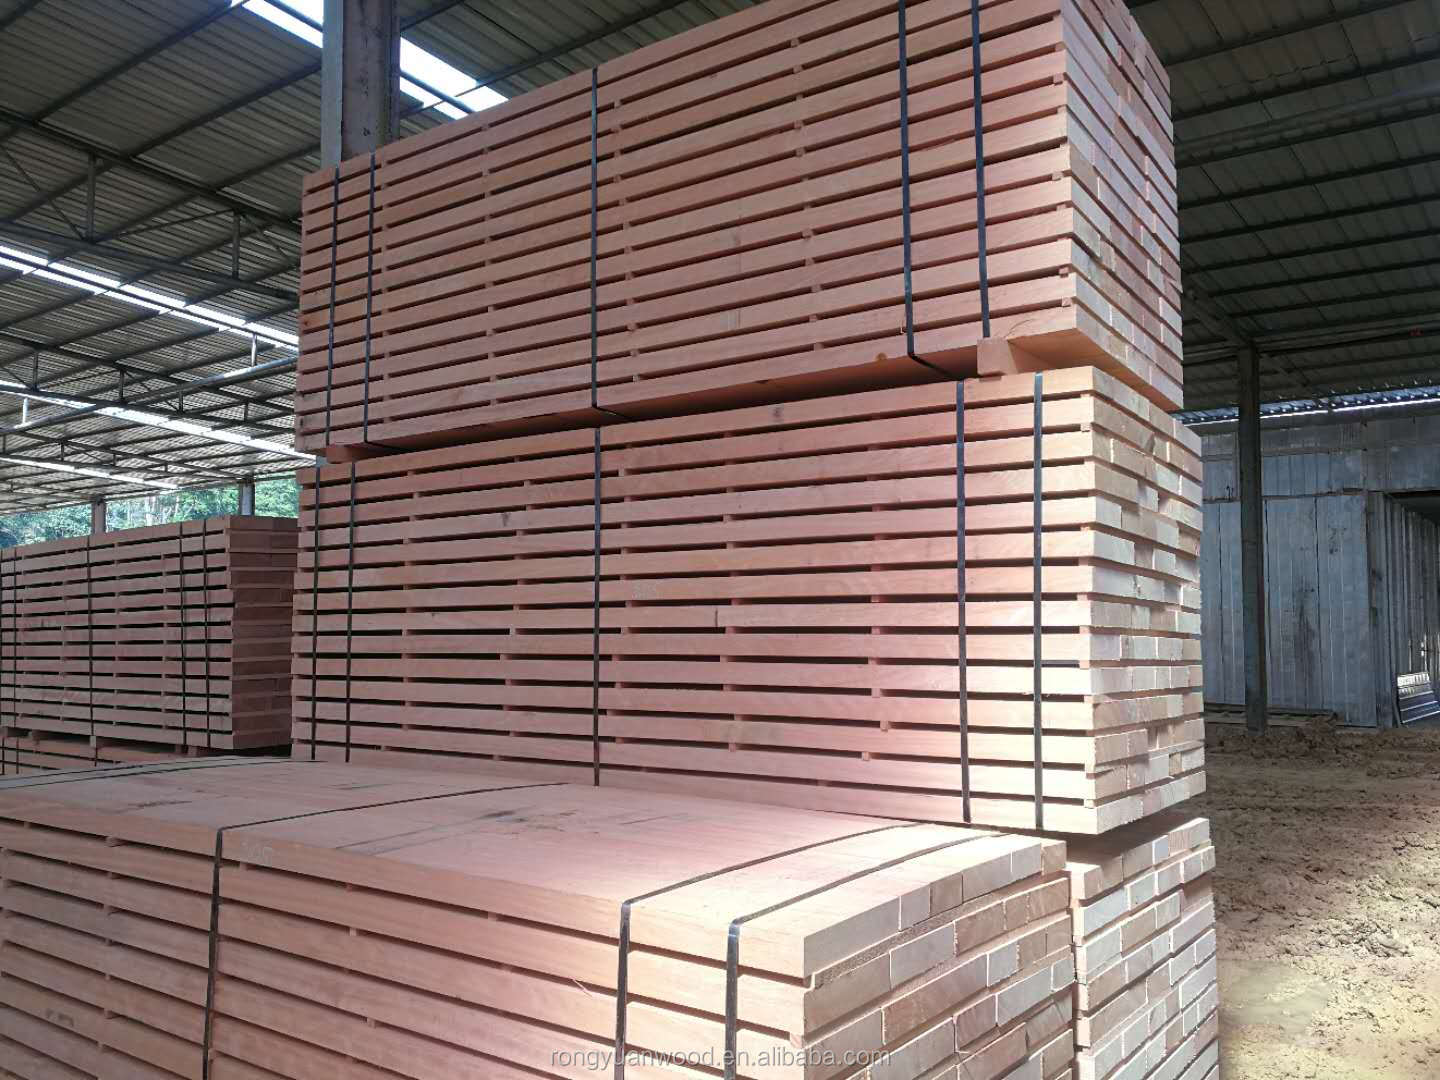 All Grade African Rosewood Okoume Sawn Timber /very High Quality/s4s Kd Or Ad Timbers